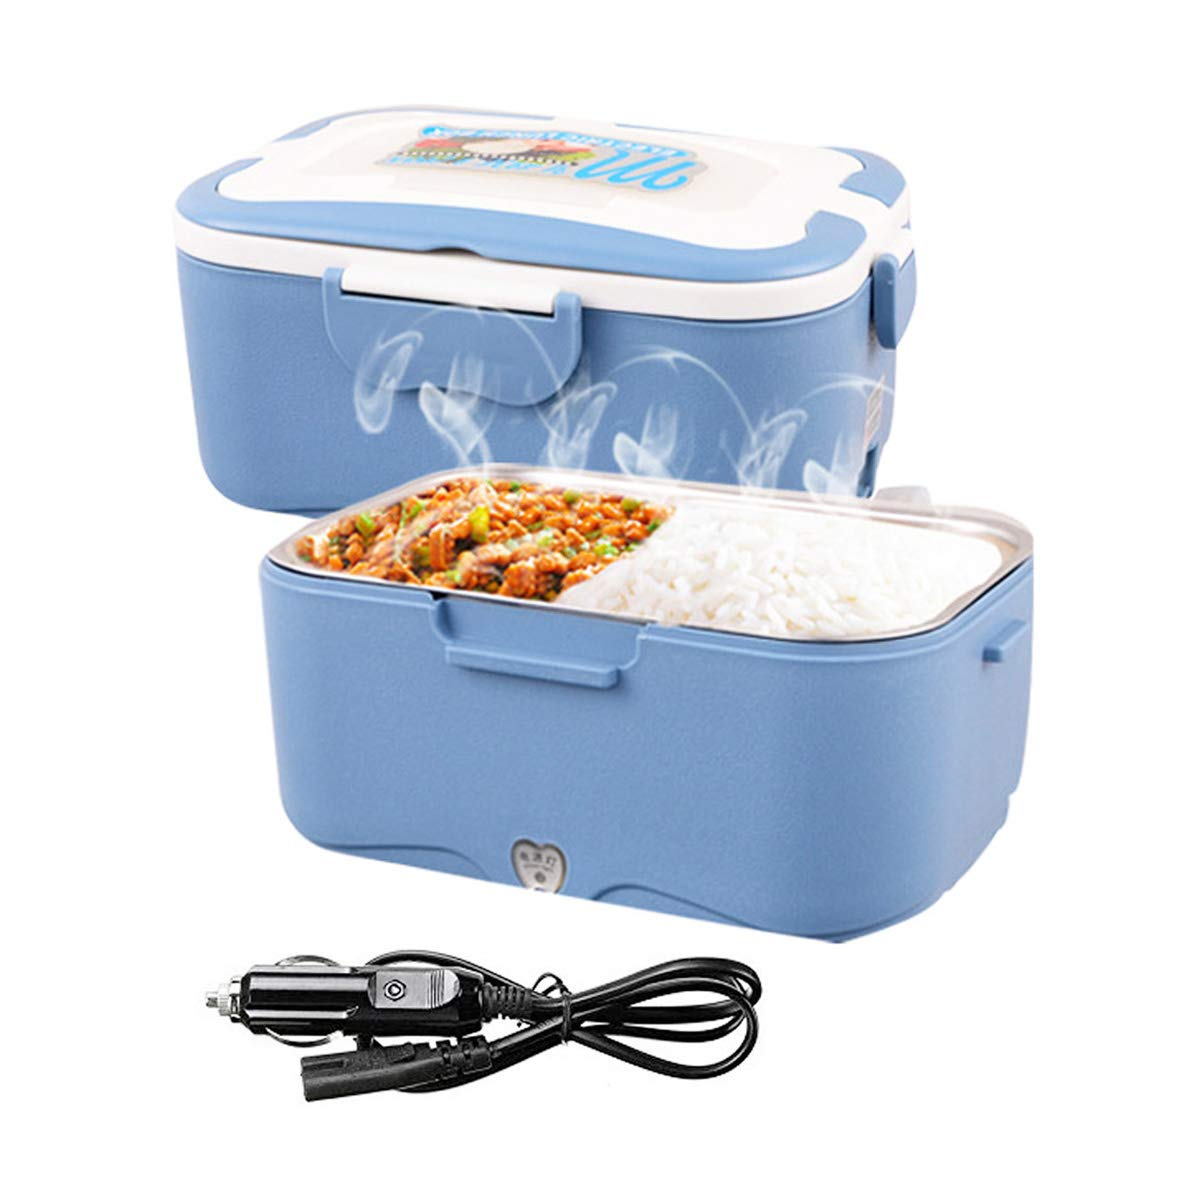 AUTOPkio Truck Electric Lunch Box, Lunchbox Electric 24V Food Warmer for Truck Driver 1.5L Portable Heating Meal Container Bento Heater(Blue)